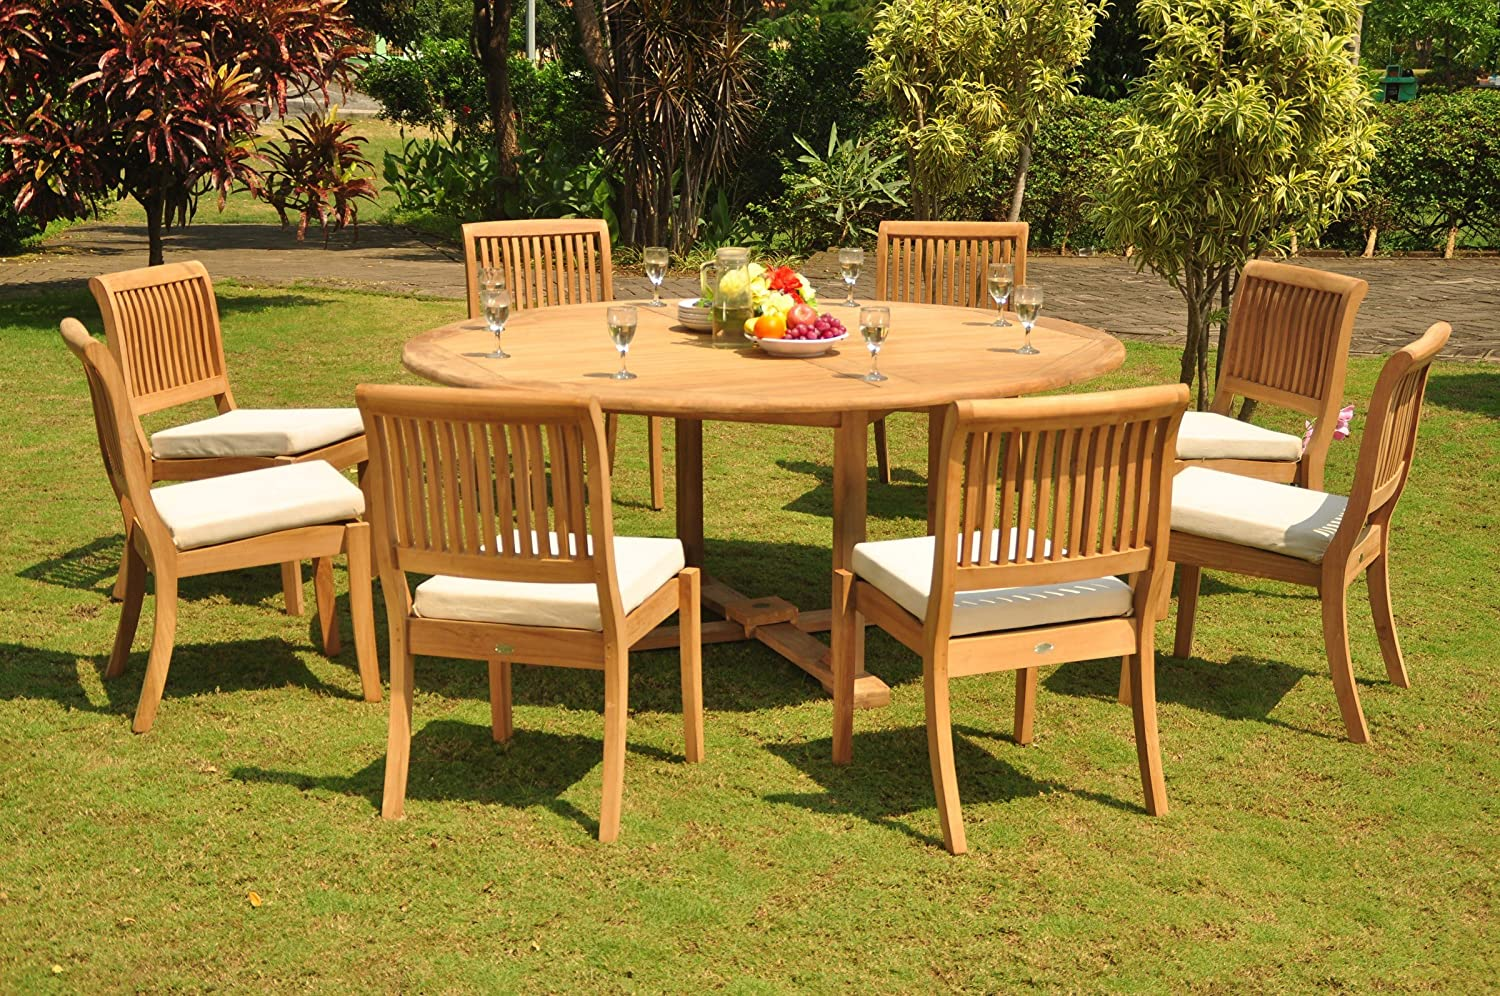 Amazon com wholesaleteak 9pc grade a teak wood dining set 72 round dining table 8 arbor stacking armless chairs whdsab59 garden outdoor